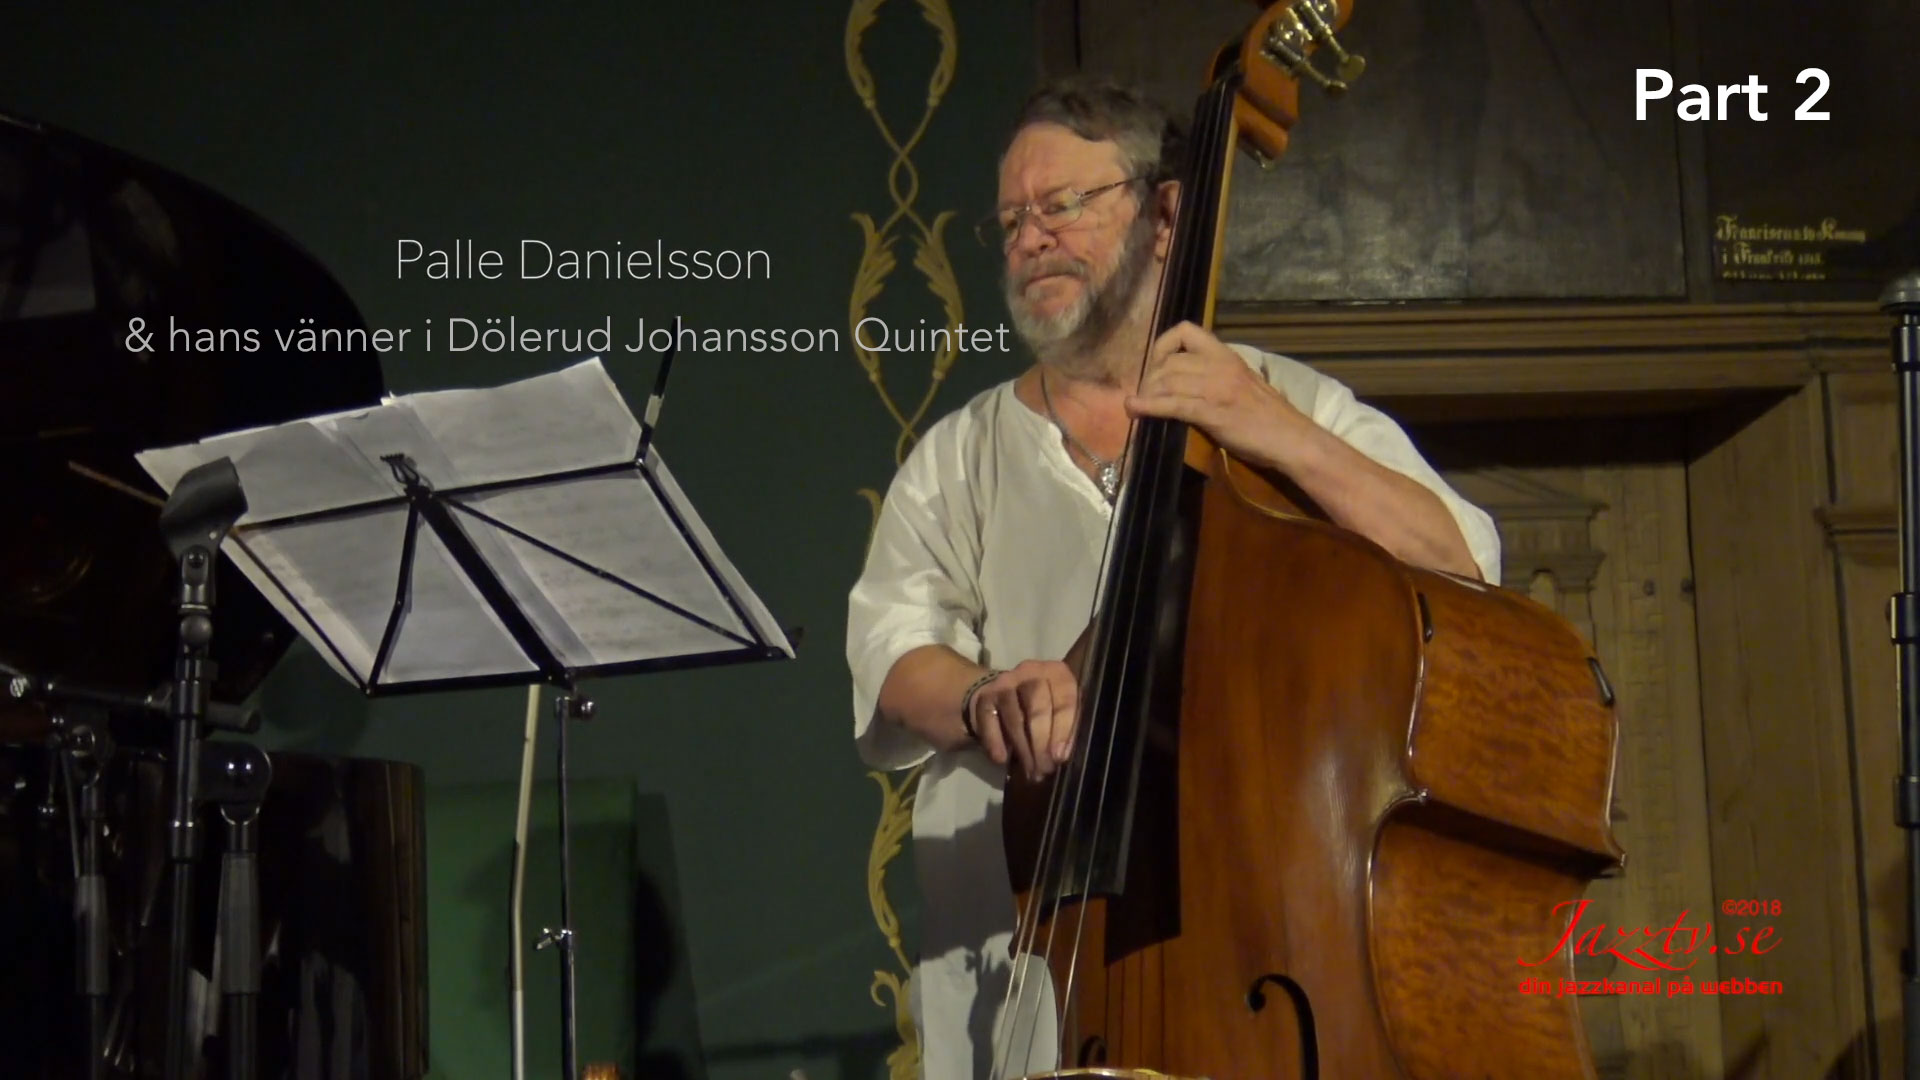 Palle and his friends in Dölerud Johansson Quintet - Part 2